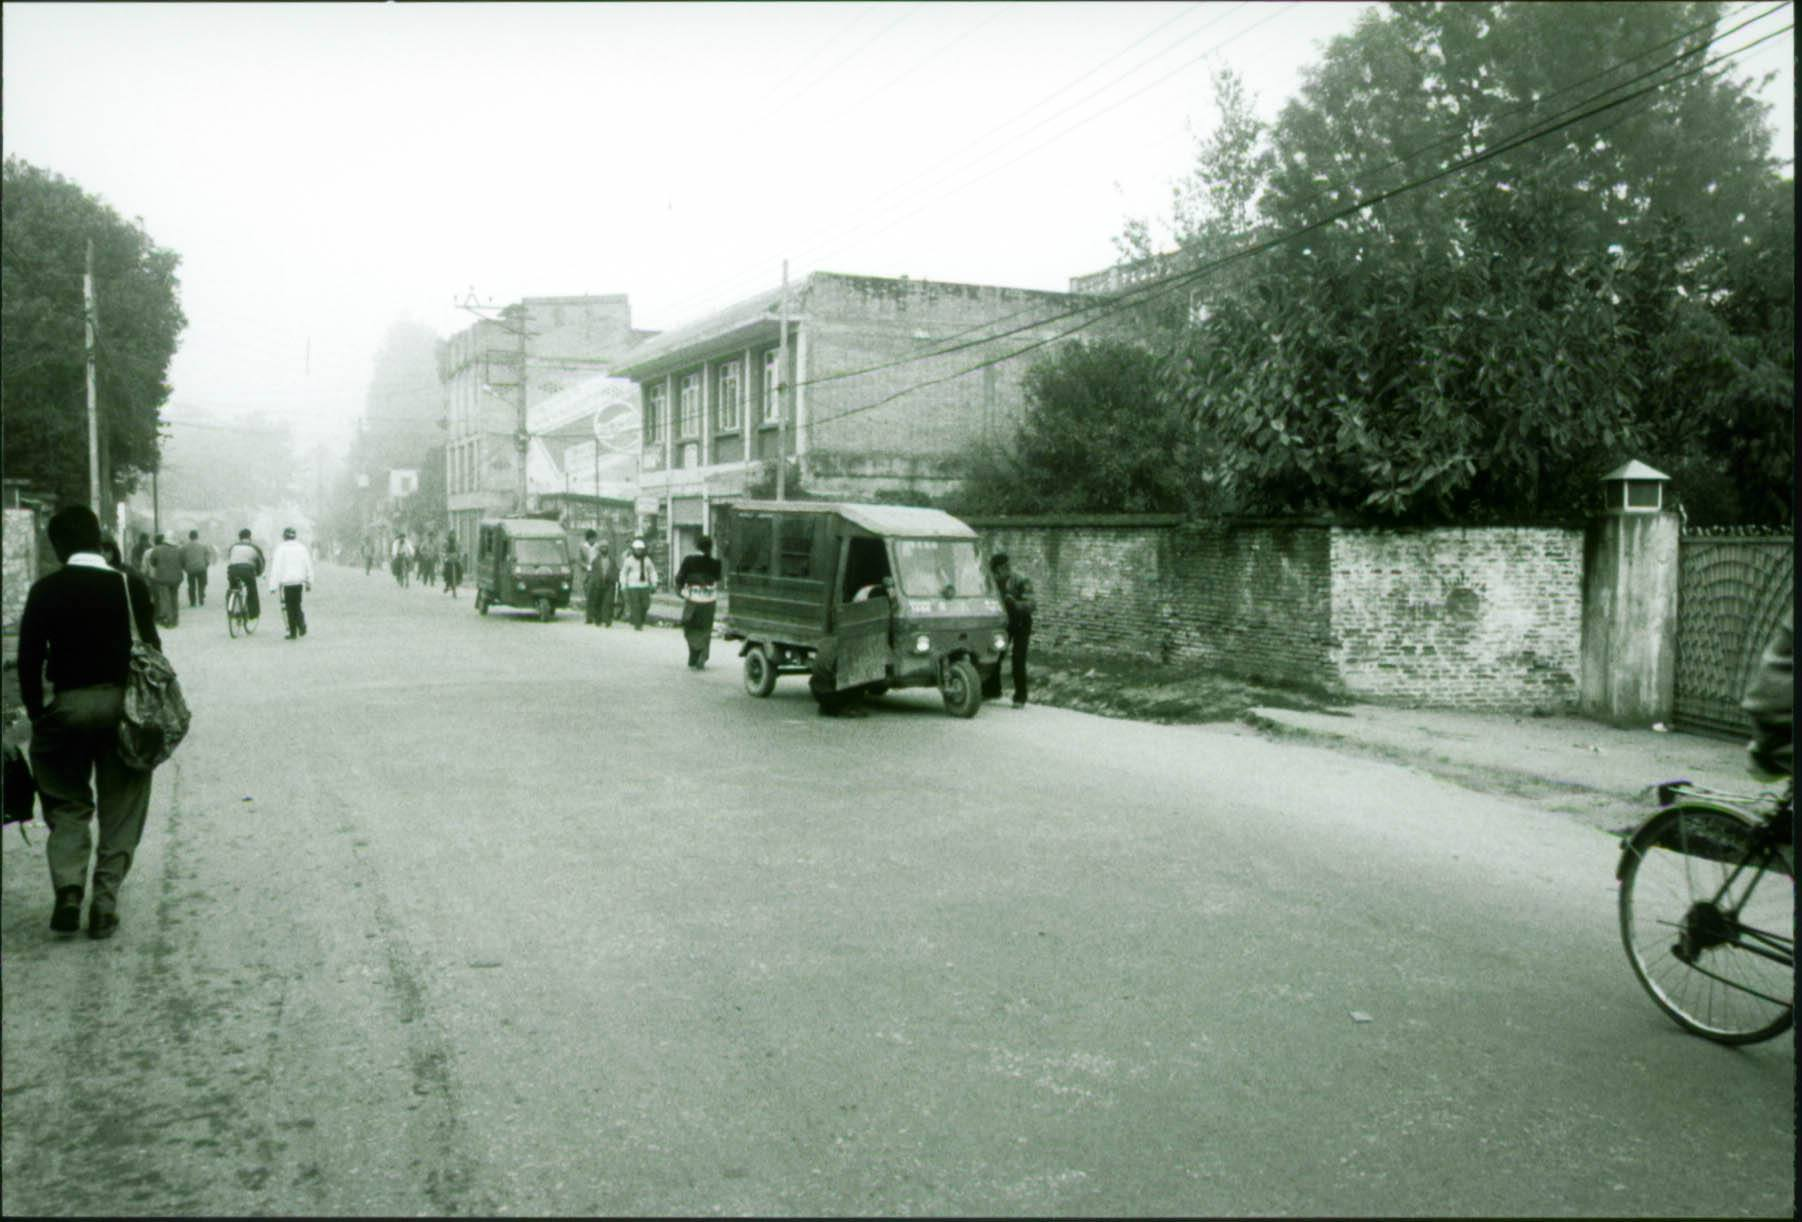 Exploring the streets of Kathmandu, Nepal during the Nepal Civil War when the military curfew was in effect.